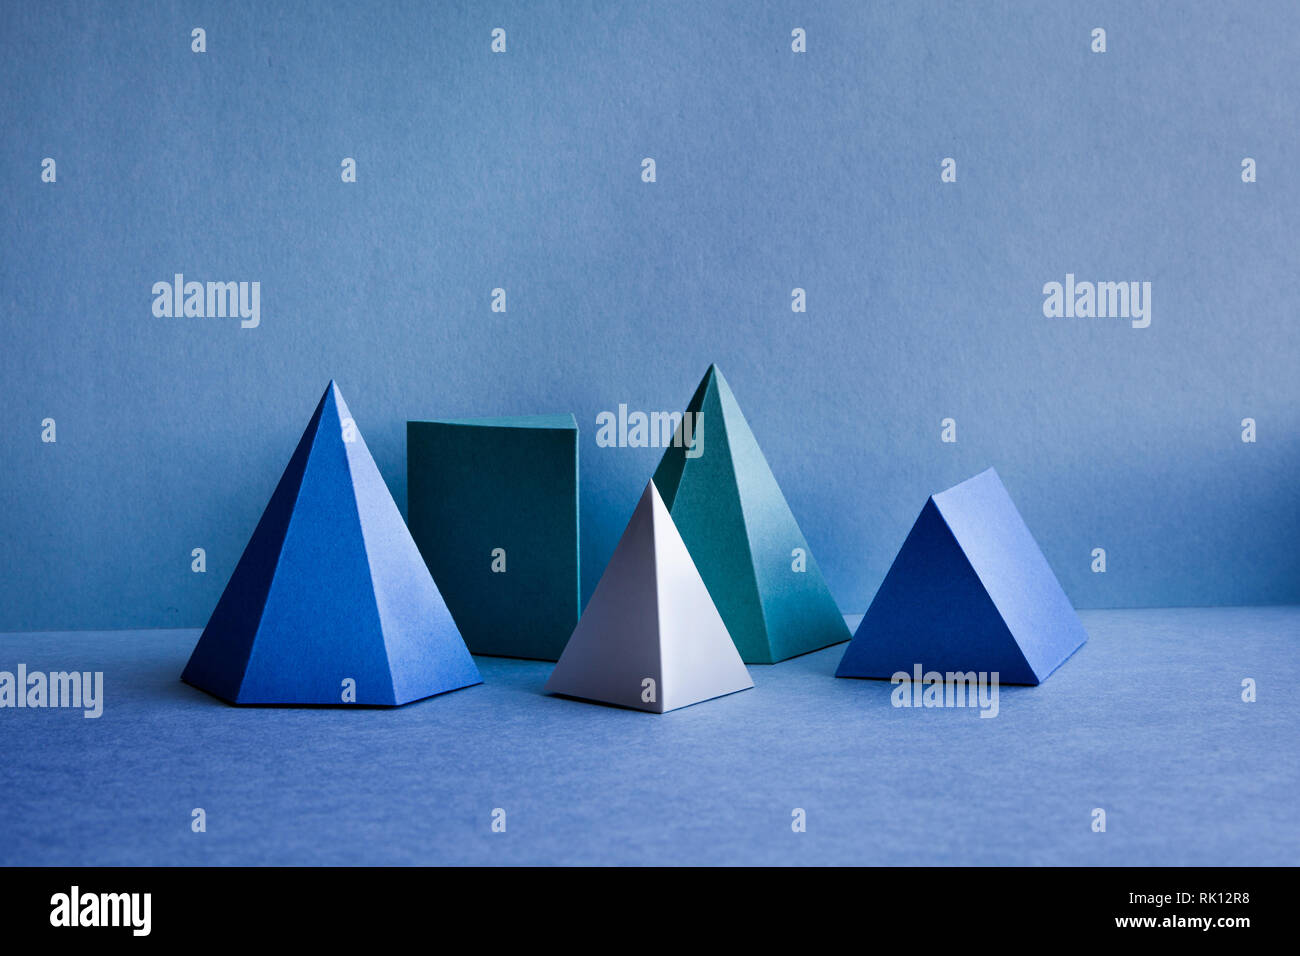 Geometrical figures still life composition. Three-dimensional prism pyramid tetrahedron rectangular objects on blue background. Platonic solids - Stock Image